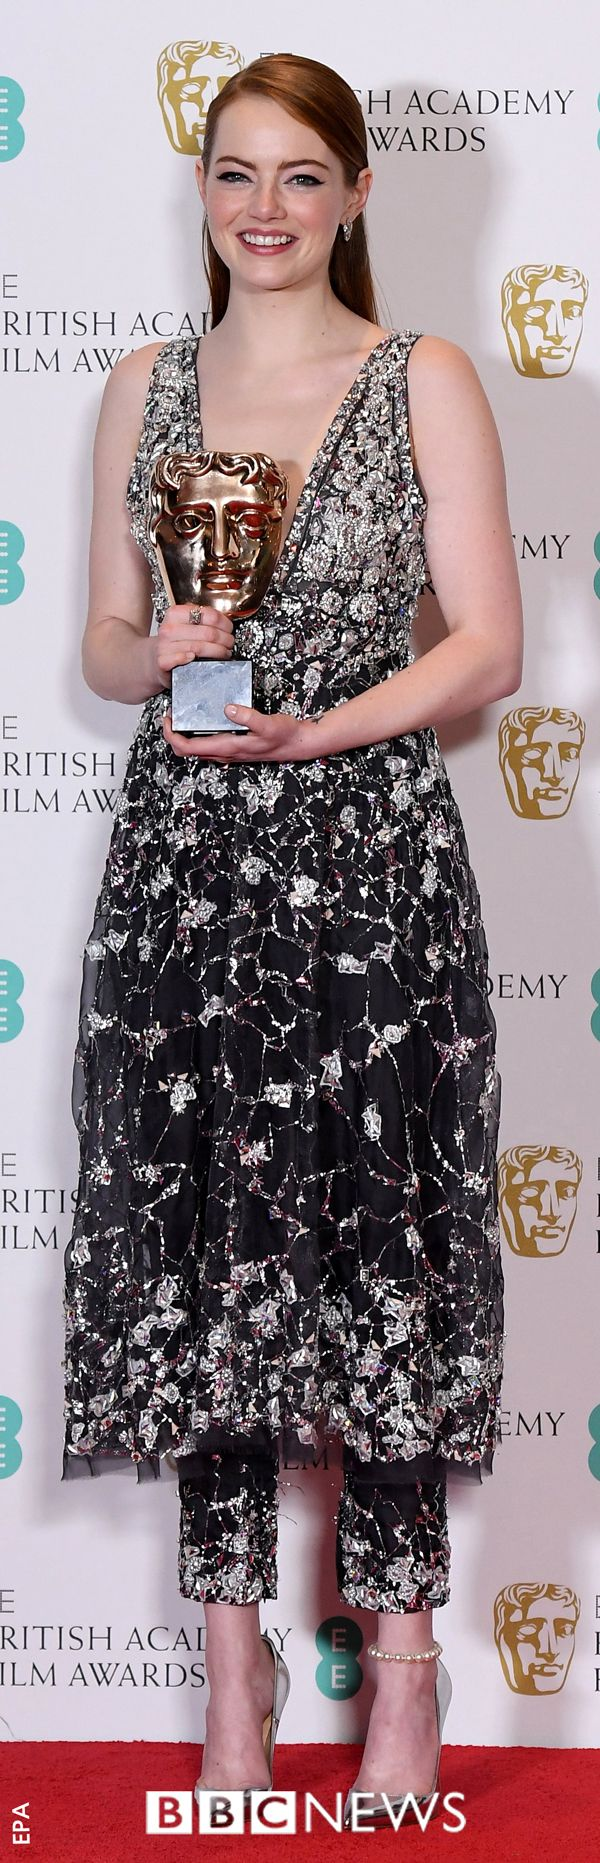 Emma Stone holds her Bafta award that she received for best leading actress for her role as Mia in La La Land. She beat Amy Adams, Emily Blunt, Natalie Portman and Meryl Steep to get the award.